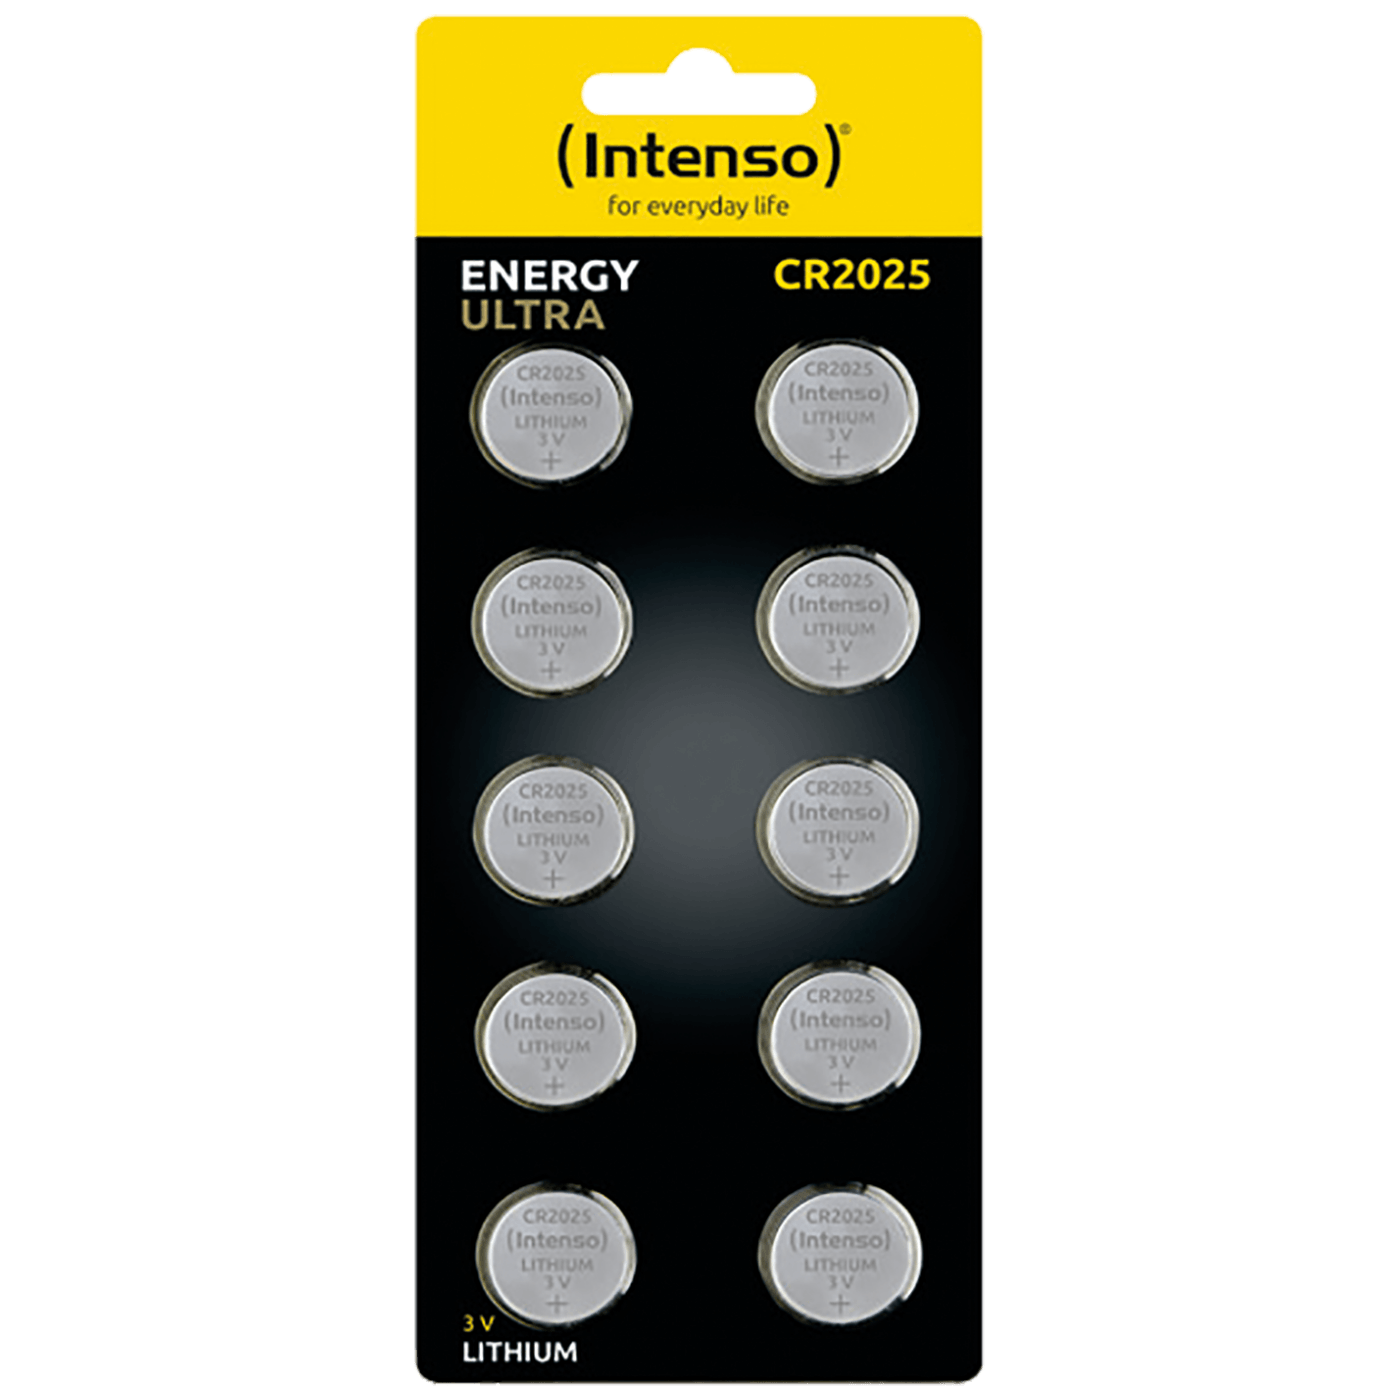 (Intenso) - CR2025/10